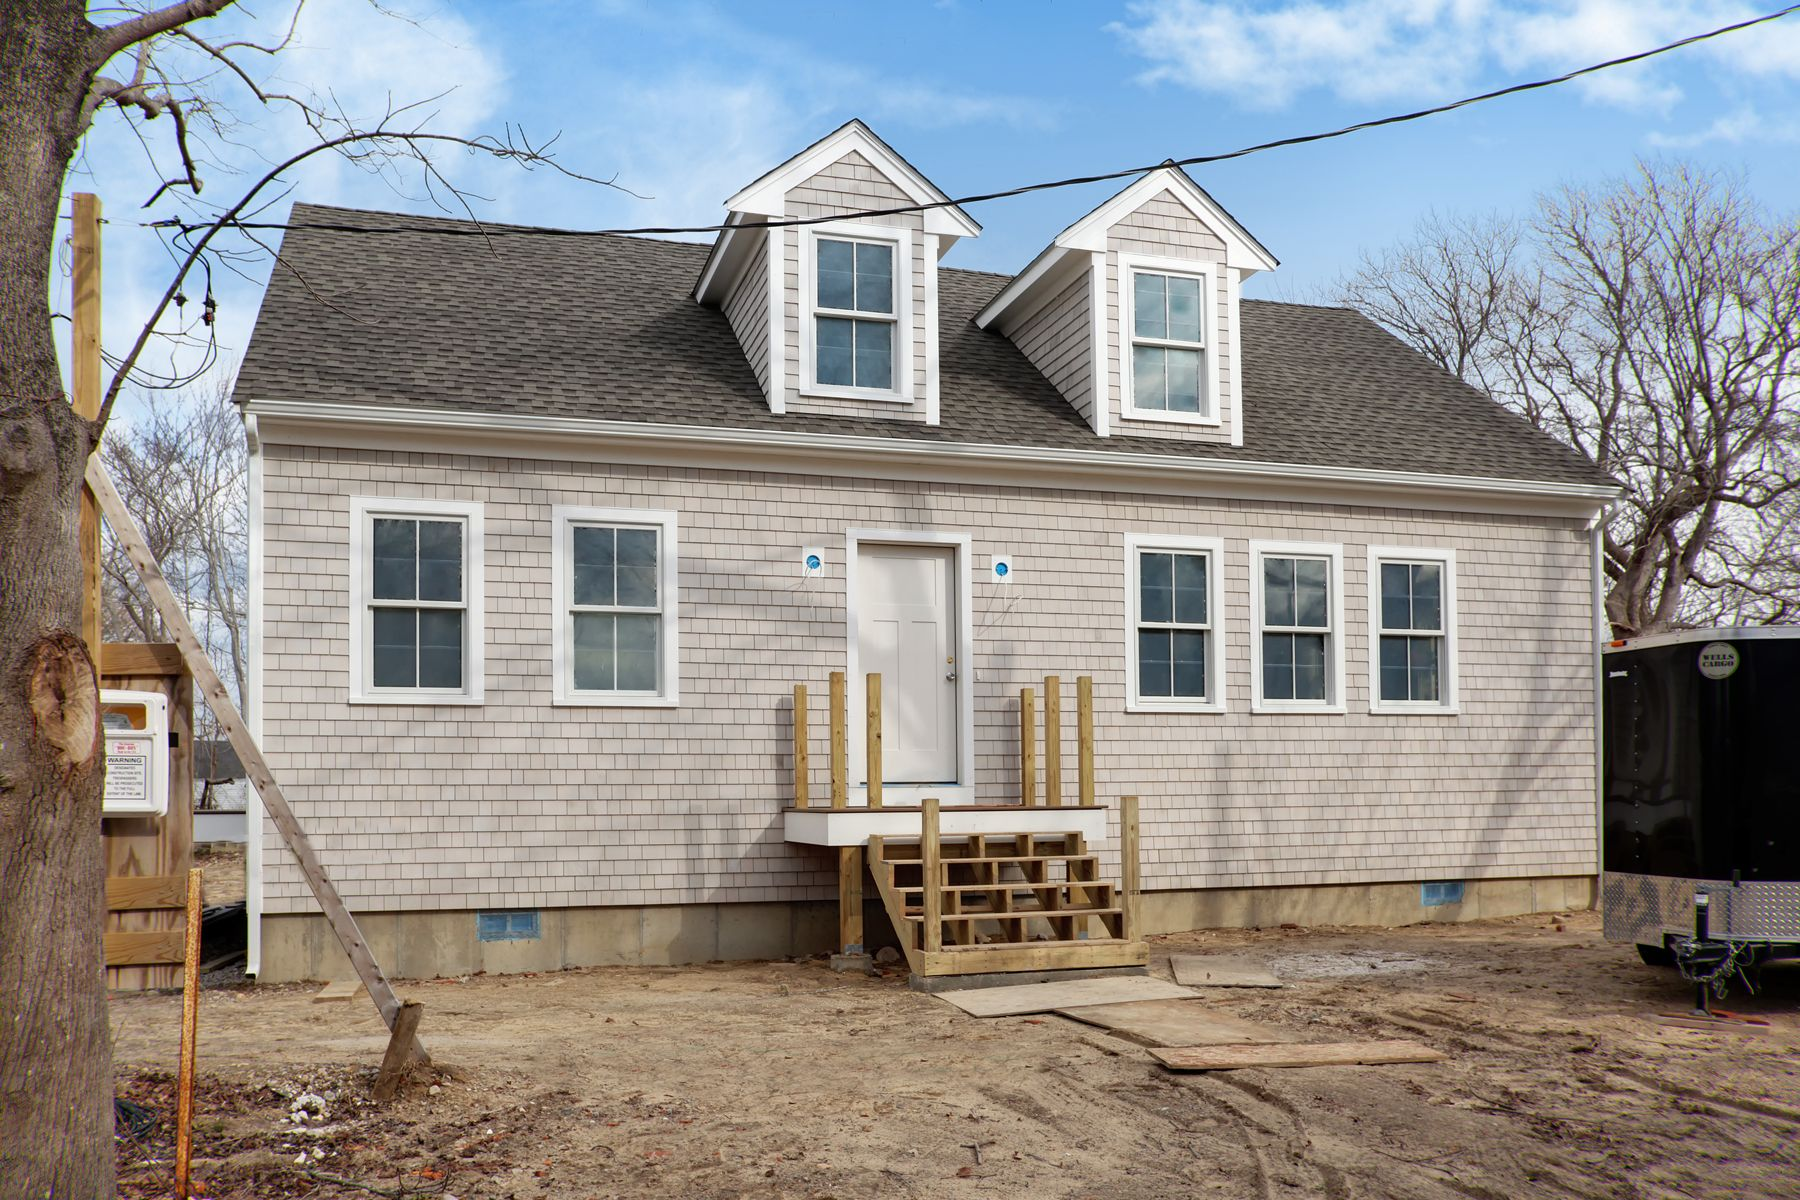 Single Family Home for Active at 20 State Street Sandwich, Massachusetts 02563 United States